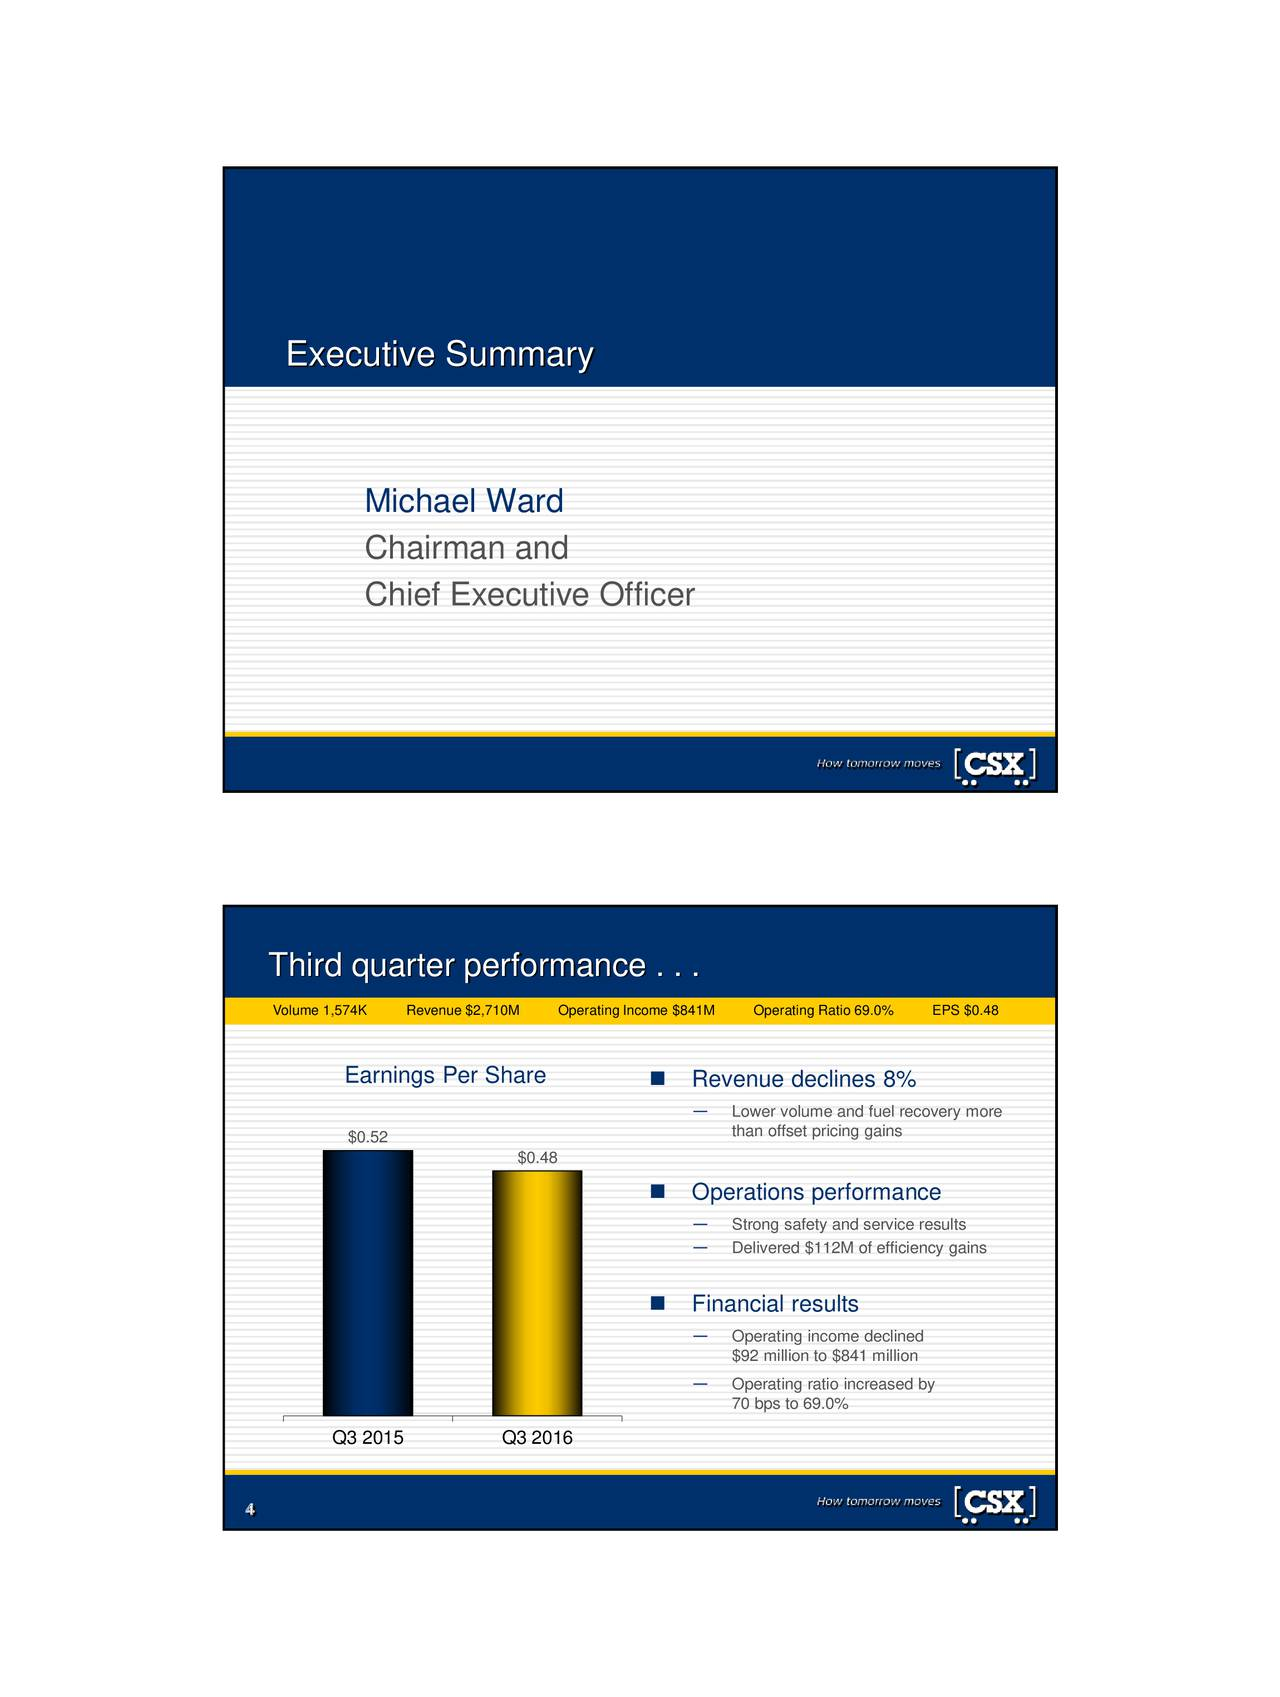 Michael Ward Chairman and Chief Executive Officer Third quarter performance . . . Volume 1,574Revenue $2,710Operating Income $Operating Ratio EPS $0.48 Earnings Per Share  Revenue declines 8% Lower volume and fuel recovery more $0.52 than offset pricing gains $0.48 Operations performance Strong safety and service results Delivered $112M of efficiency gains Financial results Operating income declined $92 million to $841 million Operating ratio increased by 70 bps to 69.0% Q3 2015 Q3 2016 4